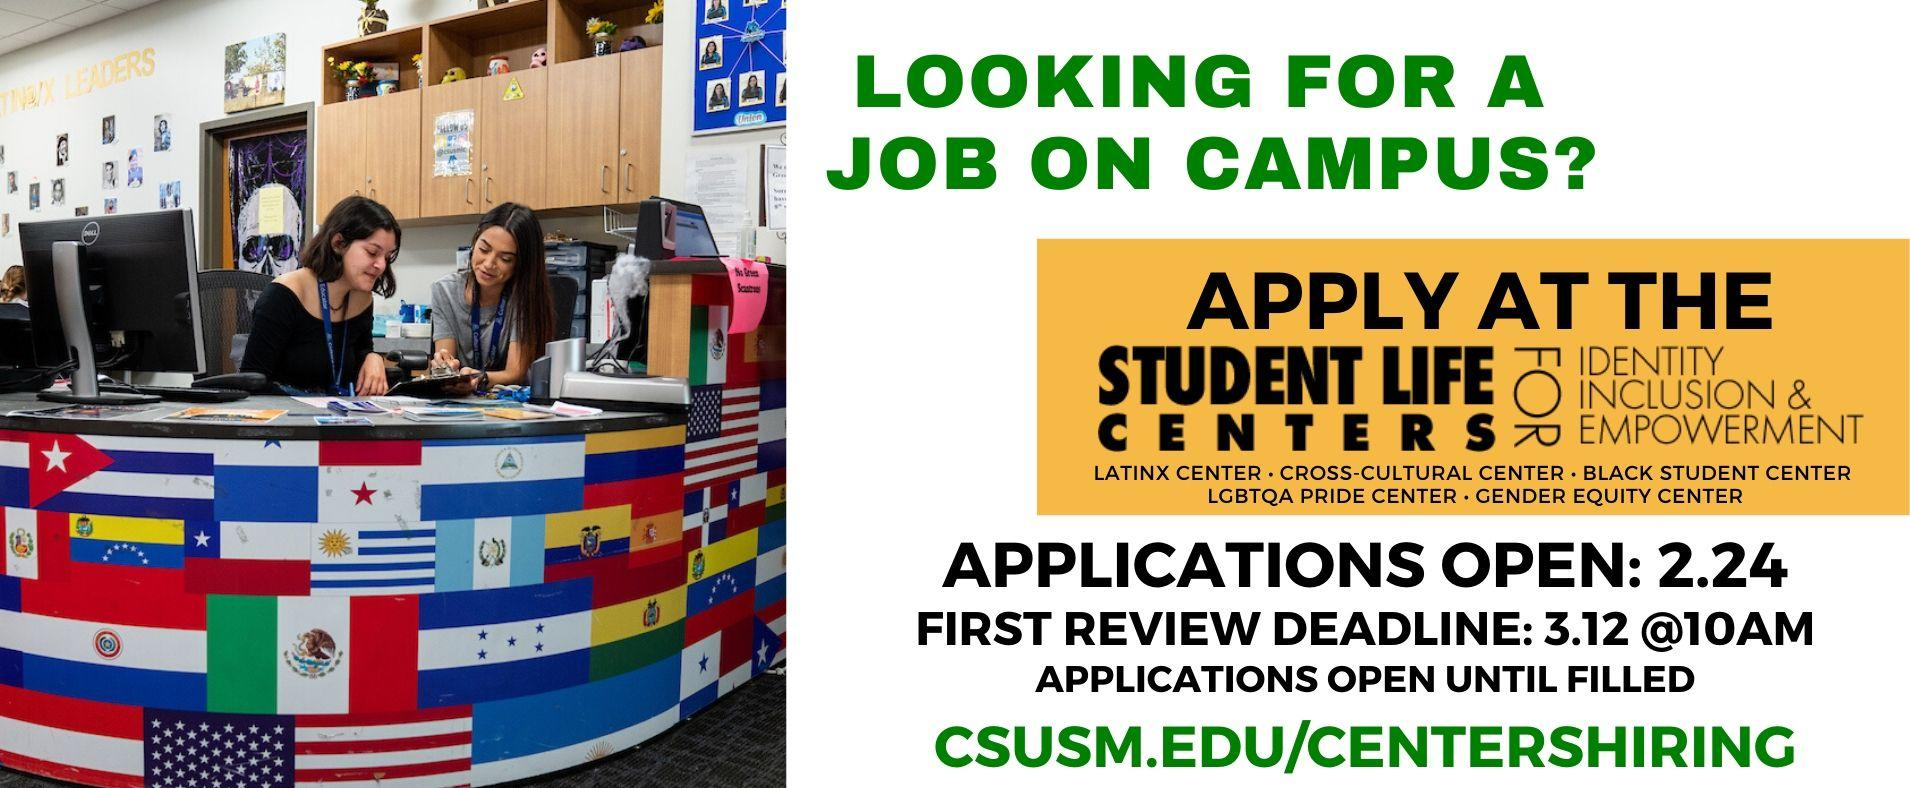 Looking for a Job? Apply today - First Review Deadline is Thursday, March 12 at 10am